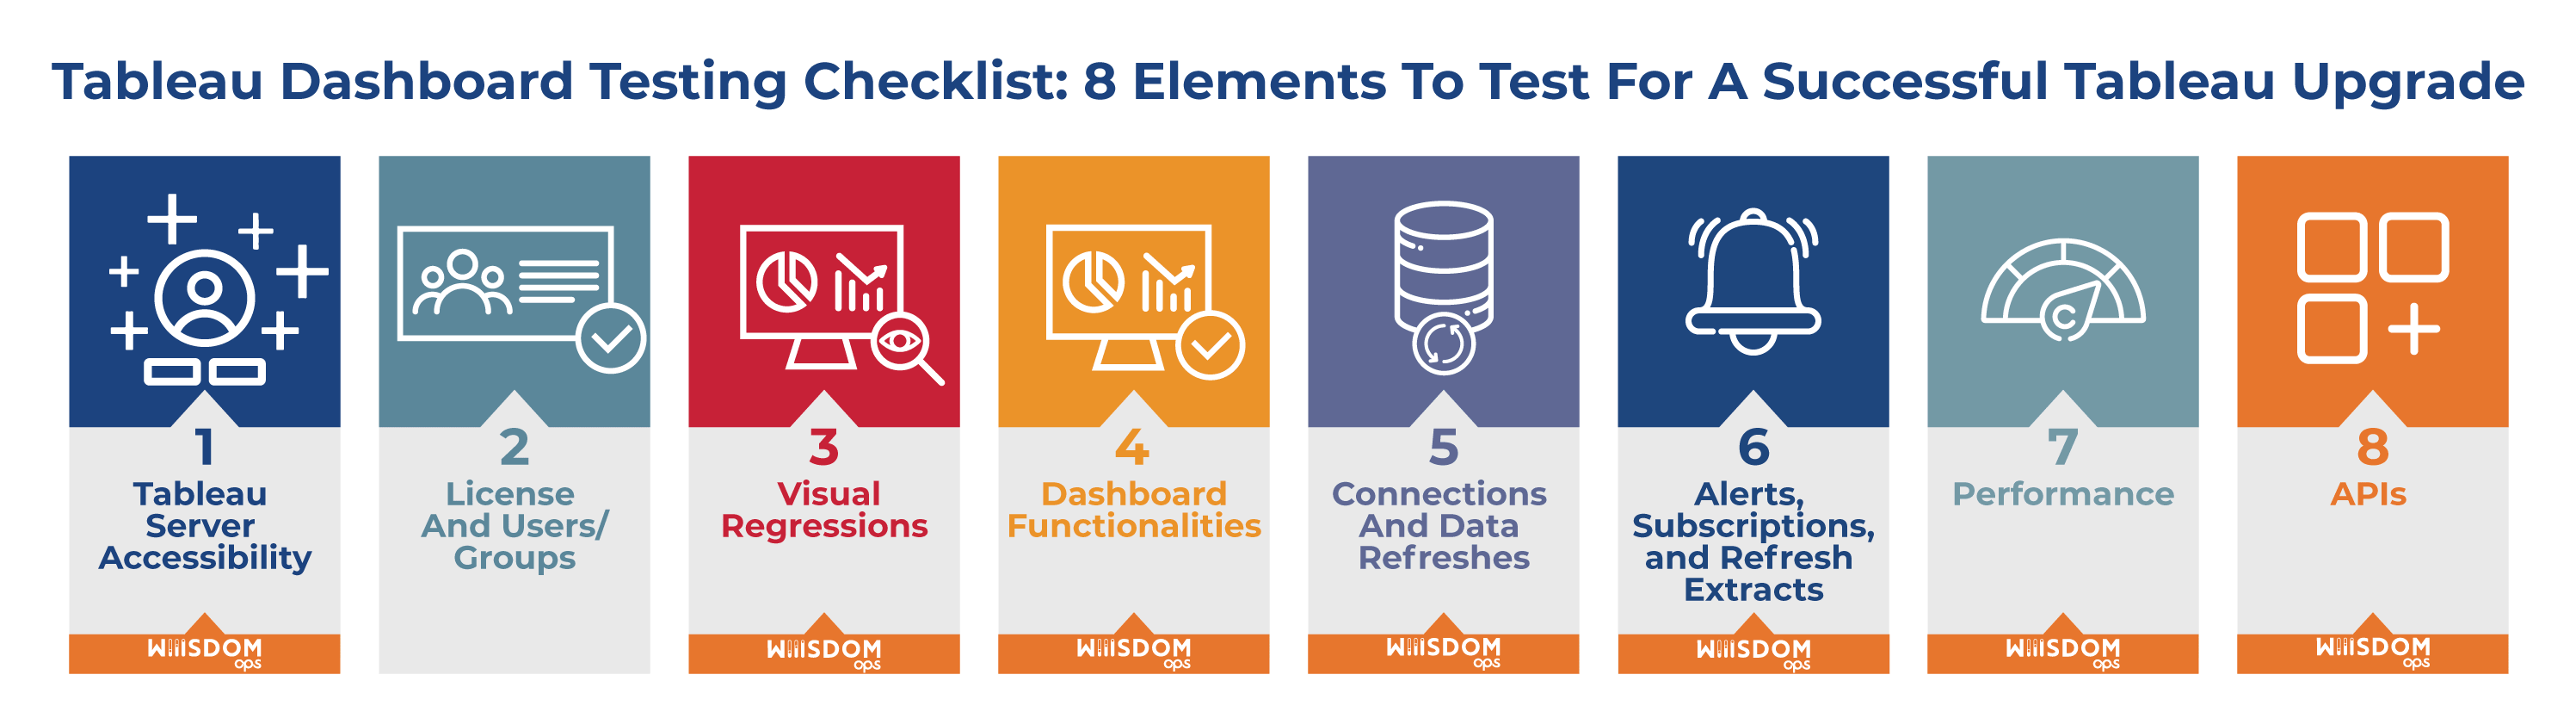 tableau-dashboard-testing-infographic